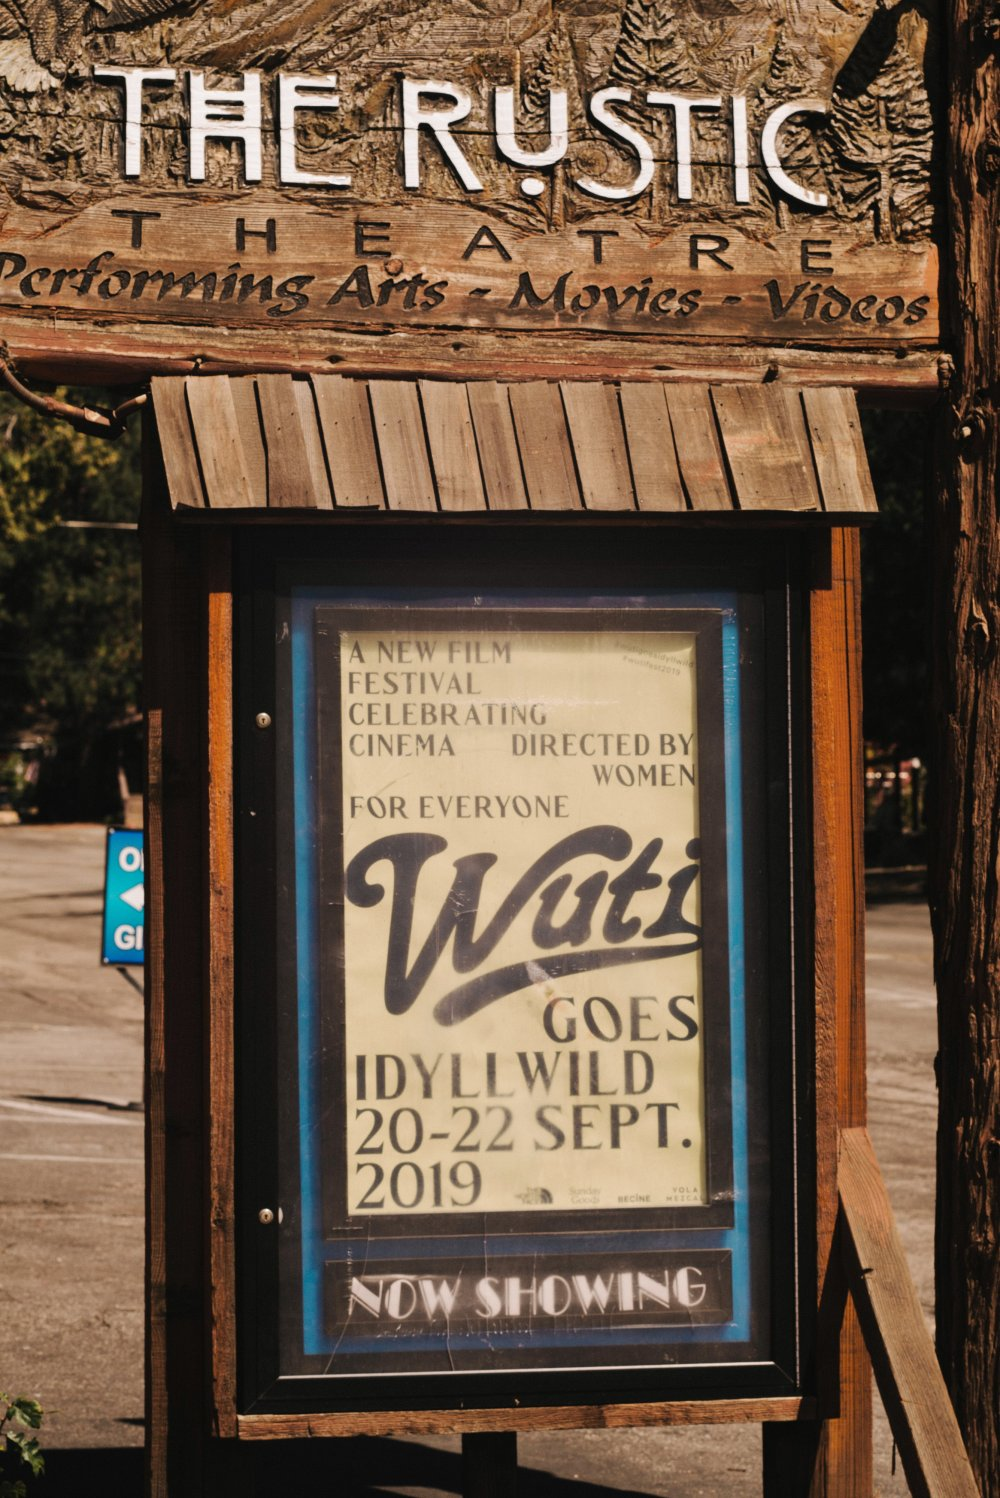 Idyllwild, California's Rustic Theatre plays host to the Women Under the Influence festival